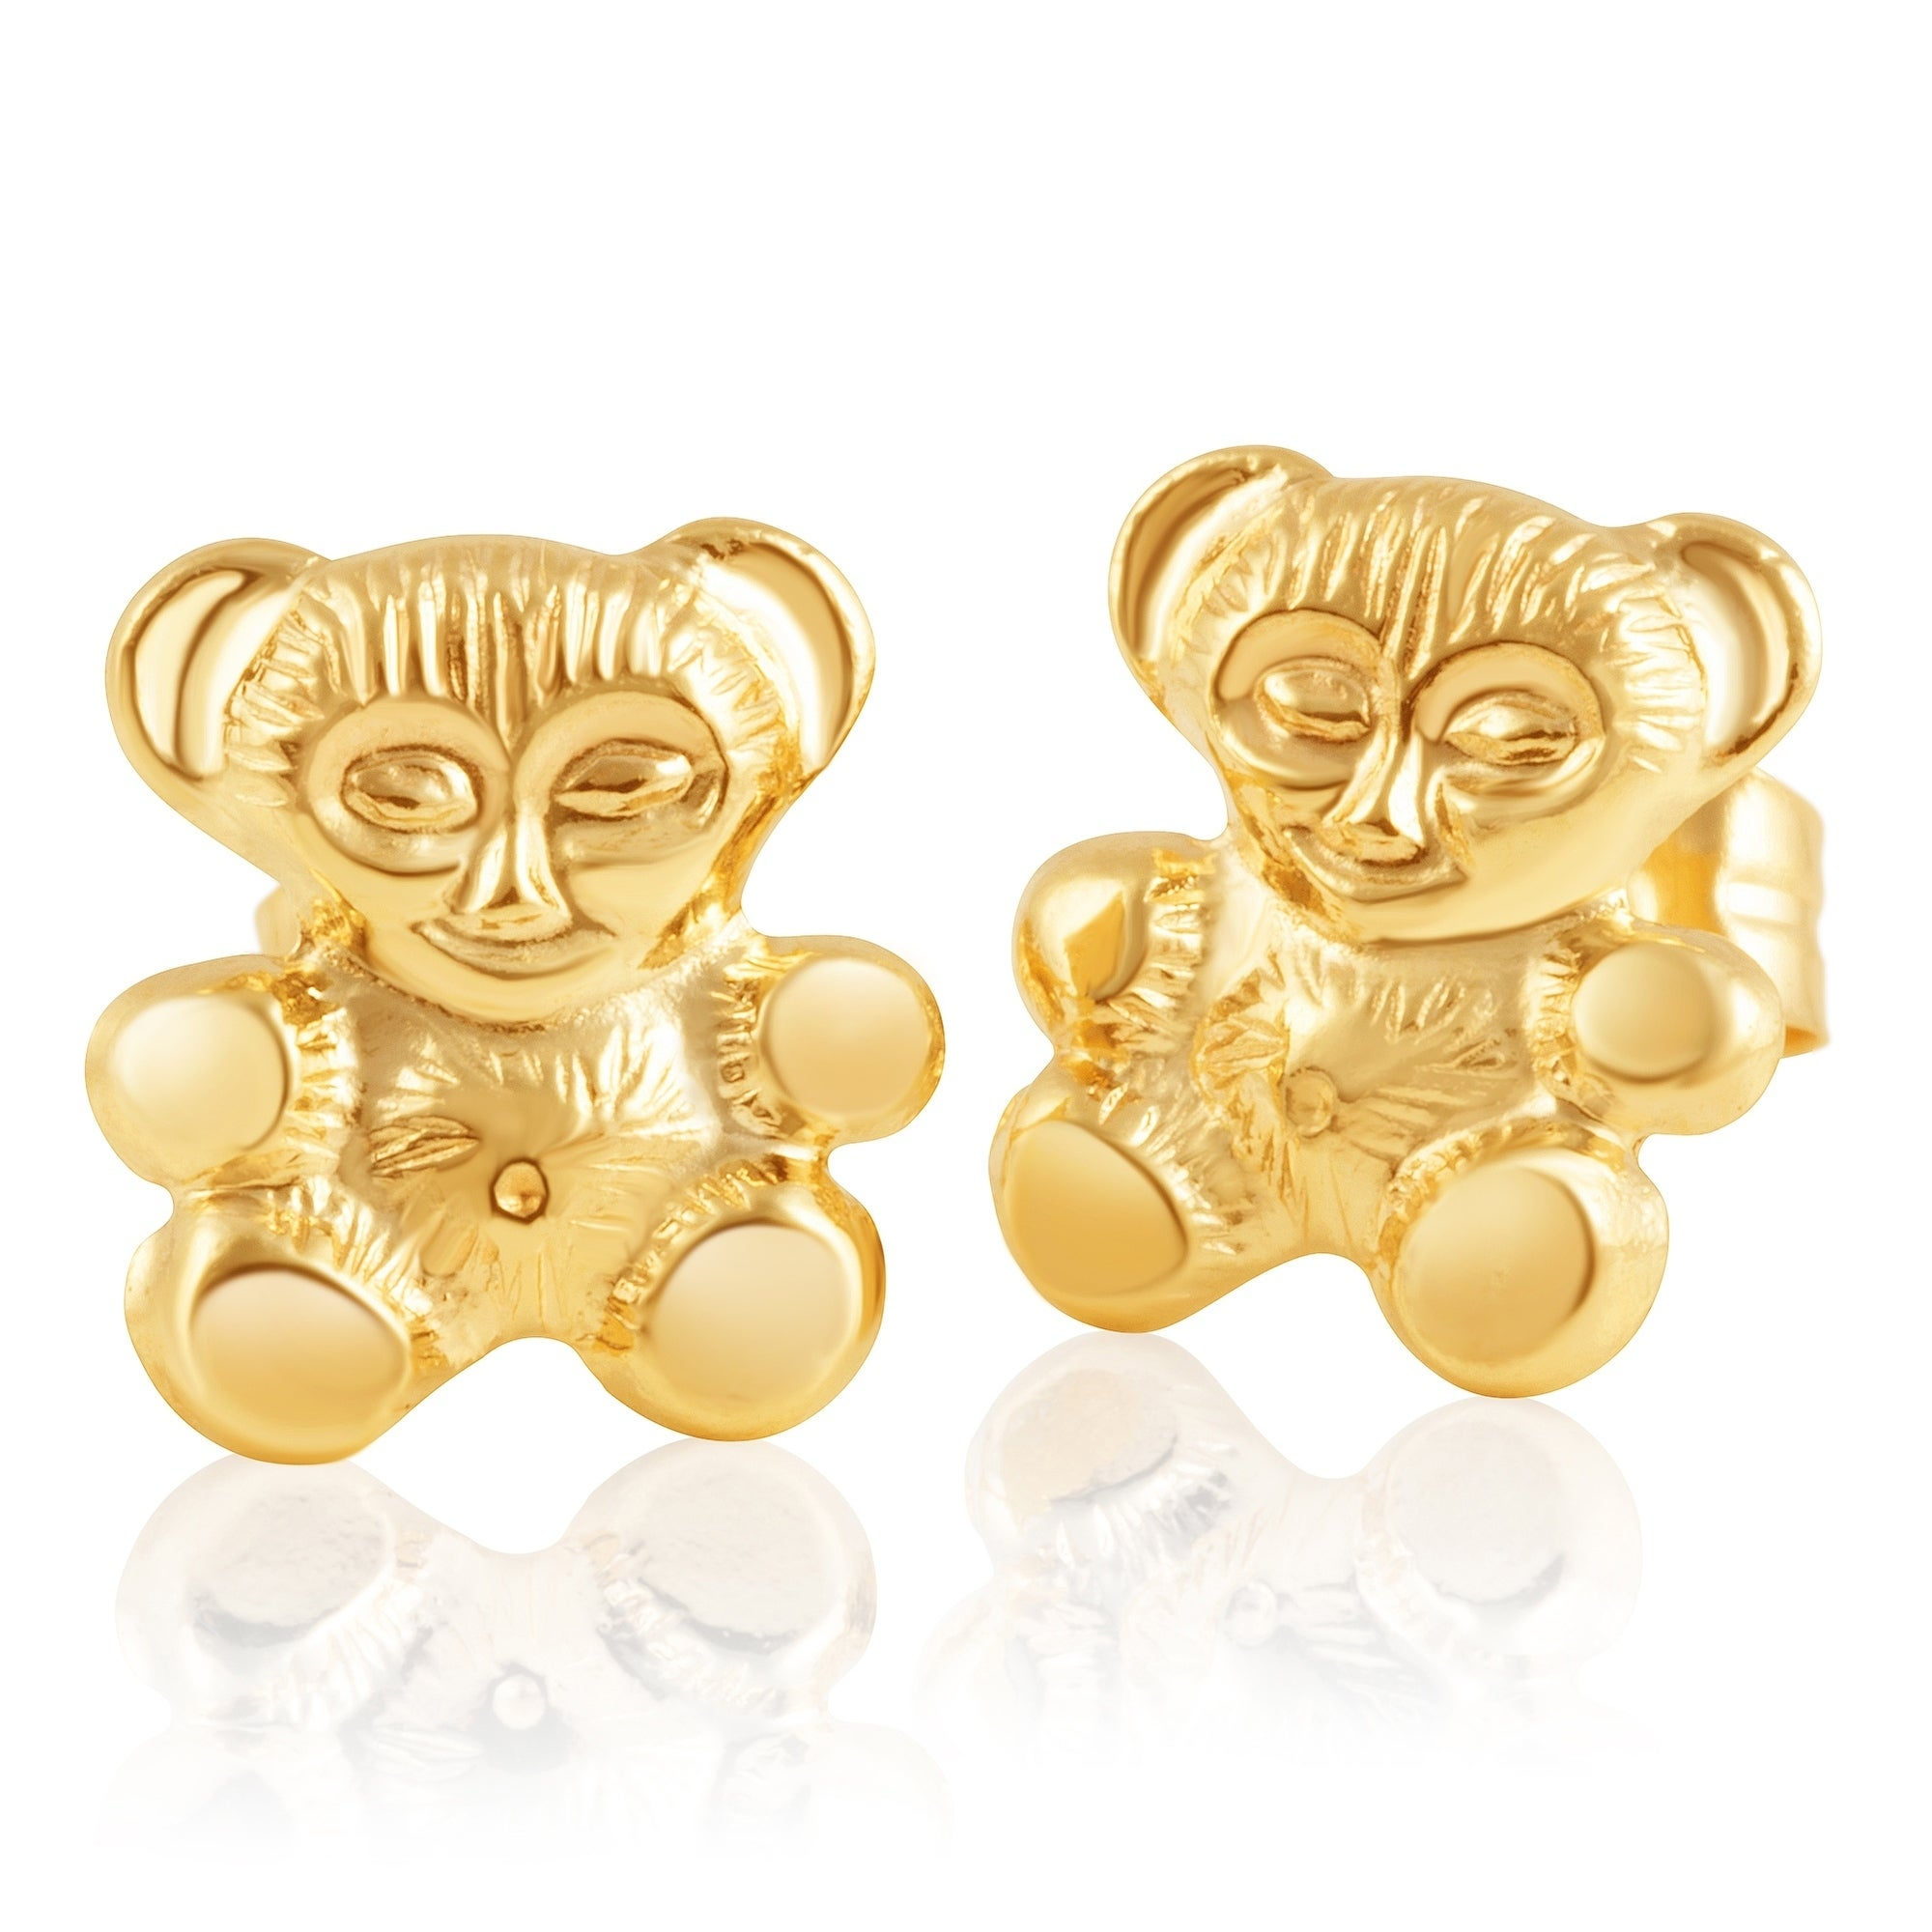 0119c9b84b8a9 14KT Gold Childrens Screwback Baby Girl Stud Earrings - Available in  Various Sizes and Radiant Animated Designs